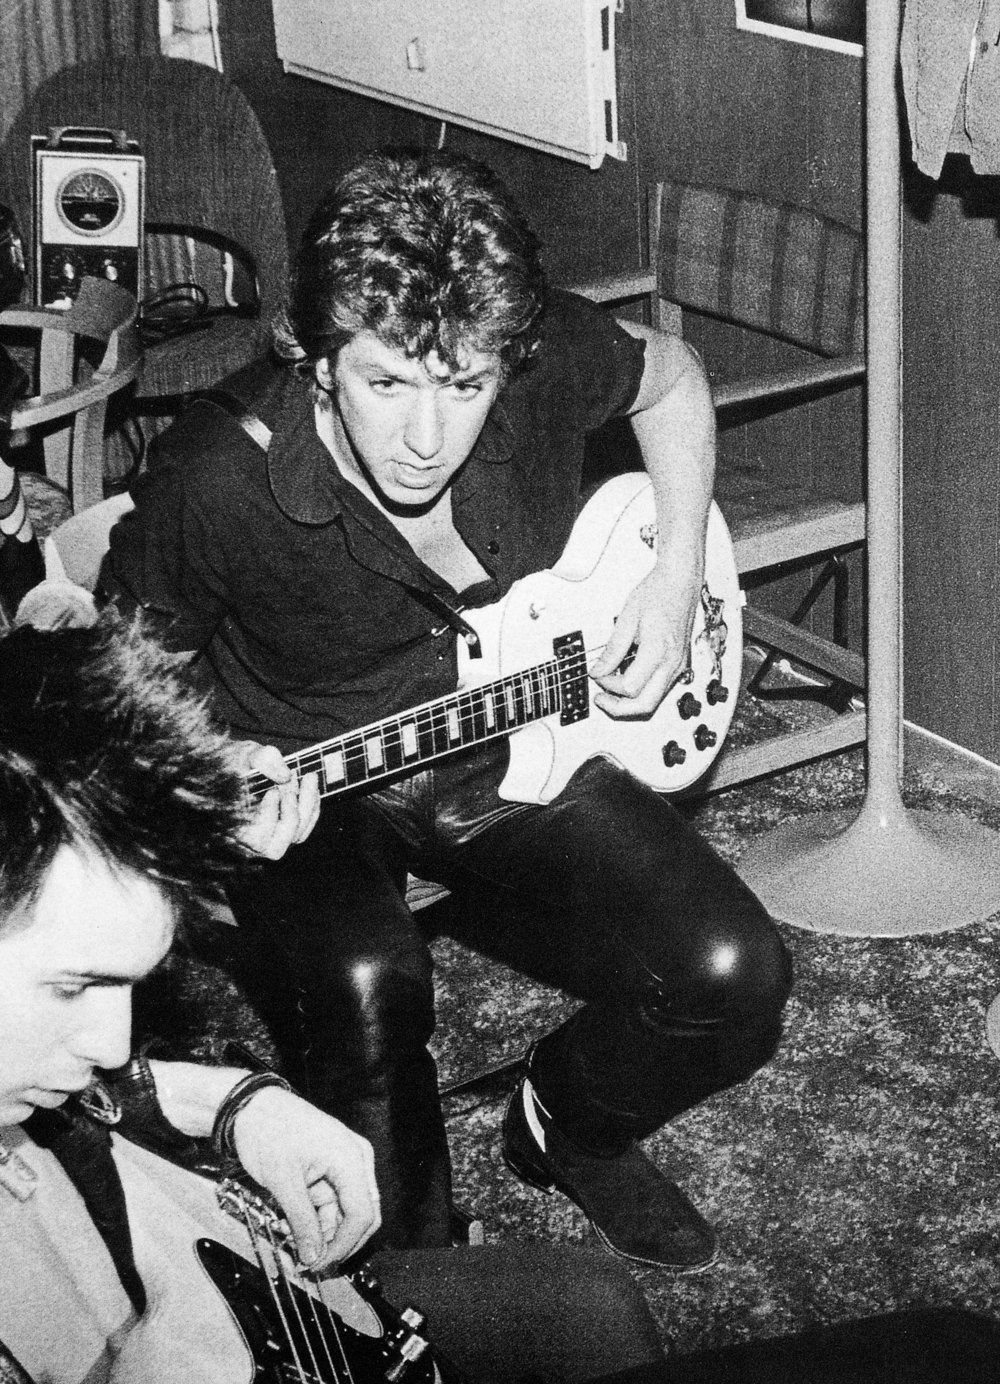 Steve Jones of the The Sex Pistols